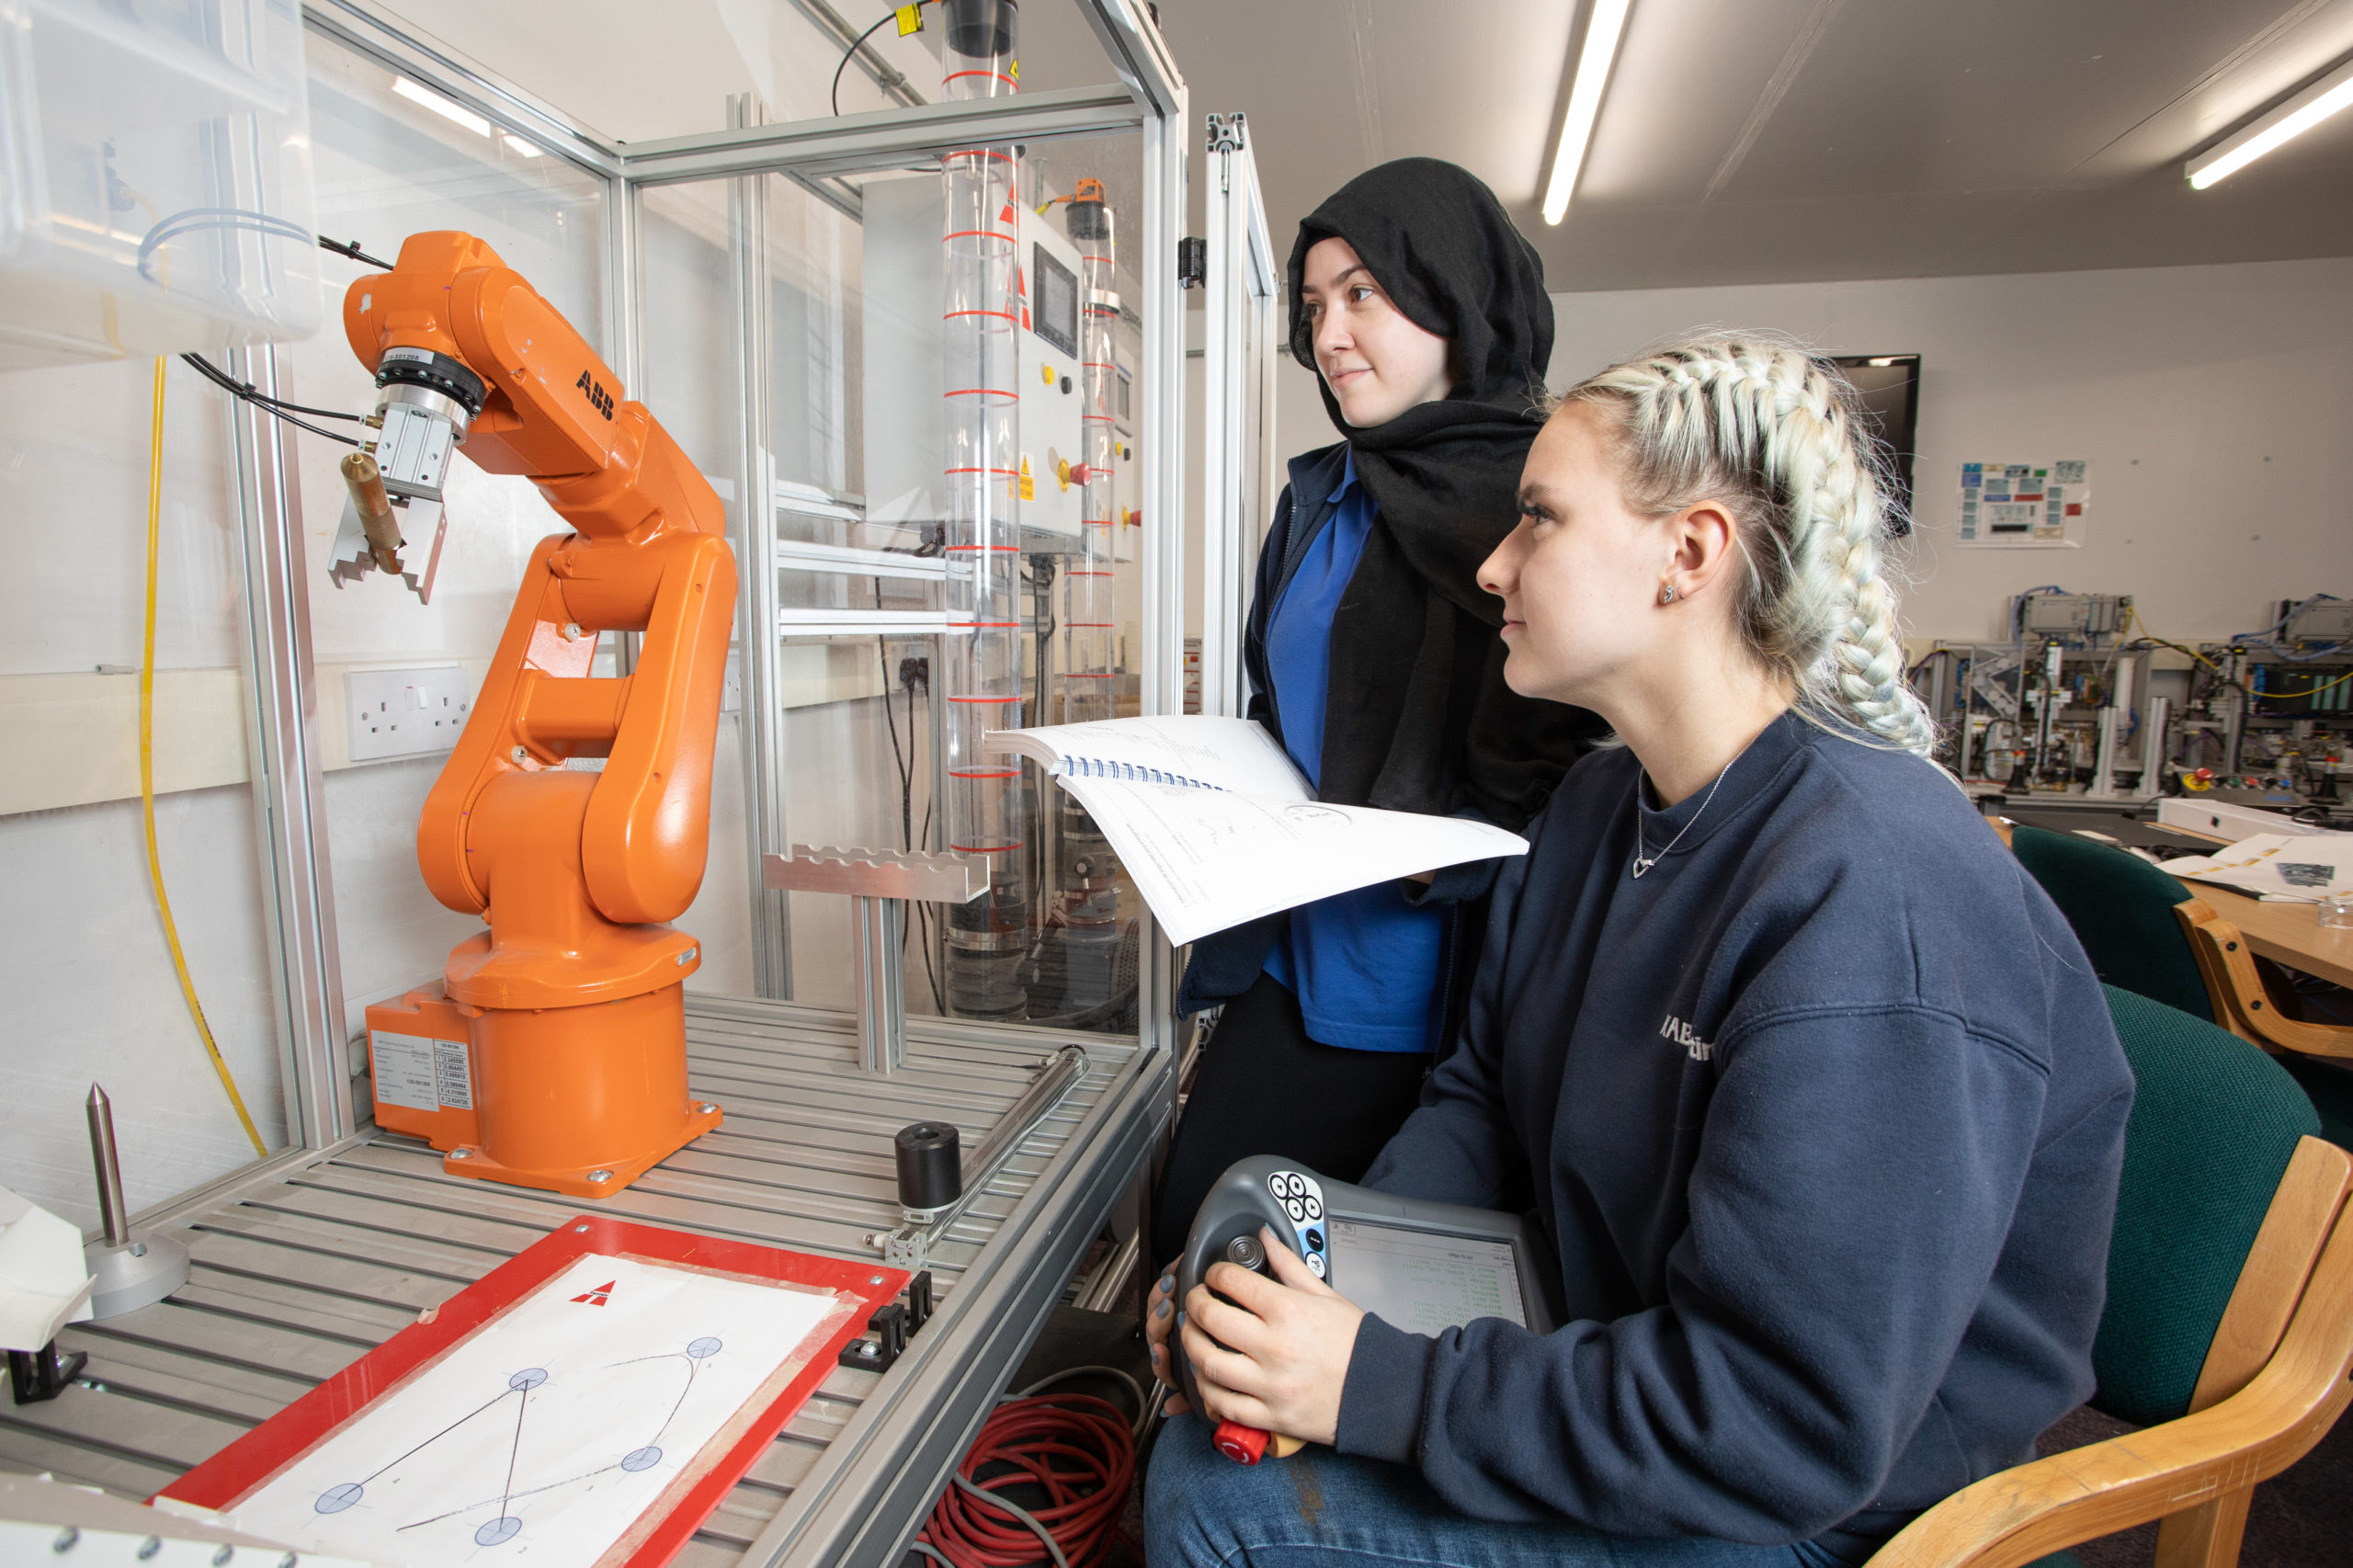 Two female Mechatronics maintenance technician apprentices learning robotics programming